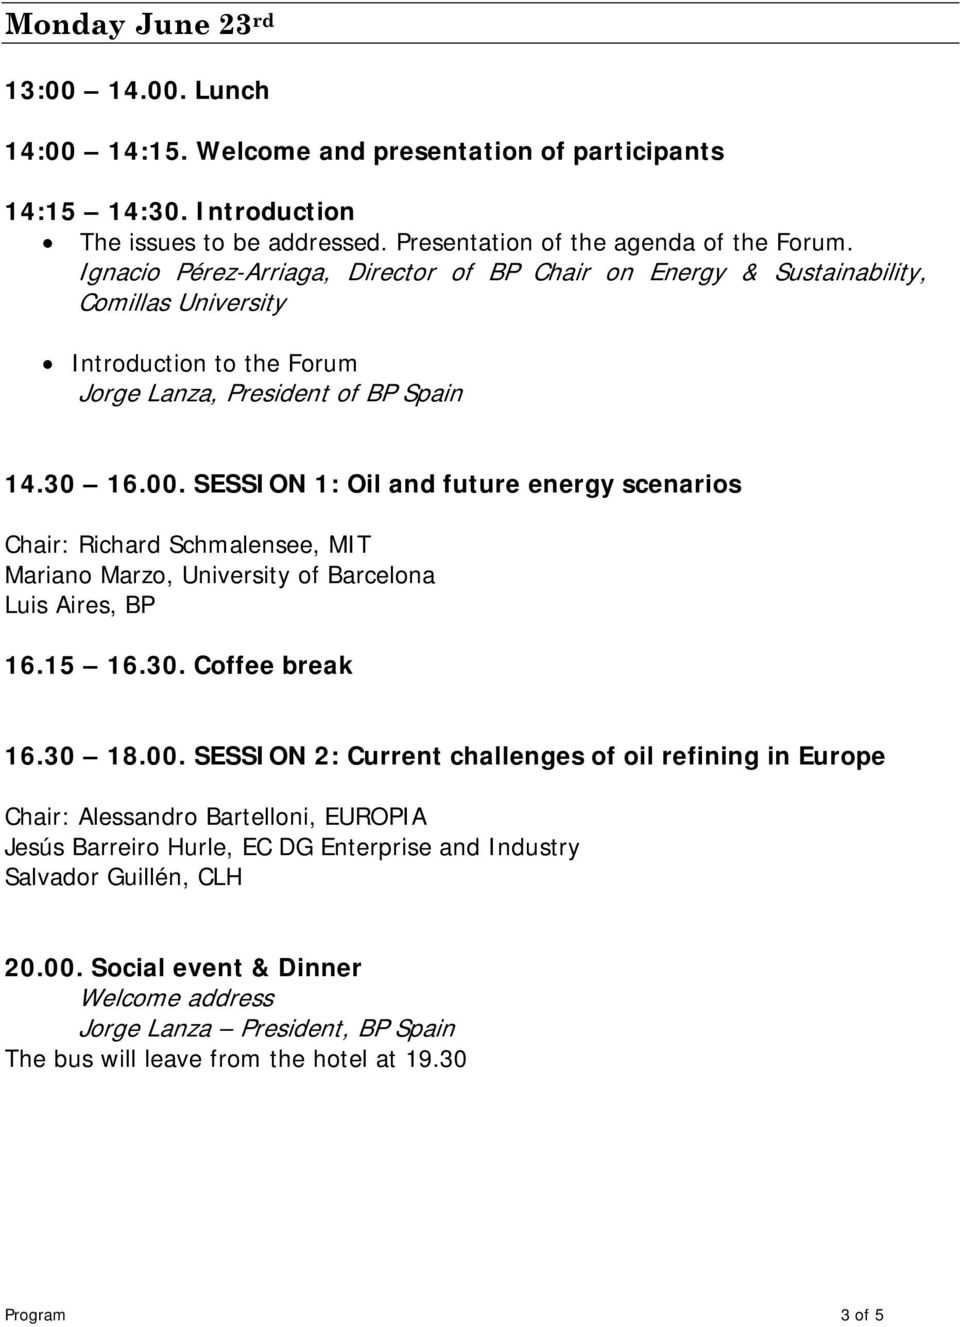 SESSION 1: Oil and future energy scenarios Chair: Richard Schmalensee, MIT Mariano Marzo, University of Barcelona Luis Aires, BP 16.15 16.30. Coffee break 16.30 18.00.